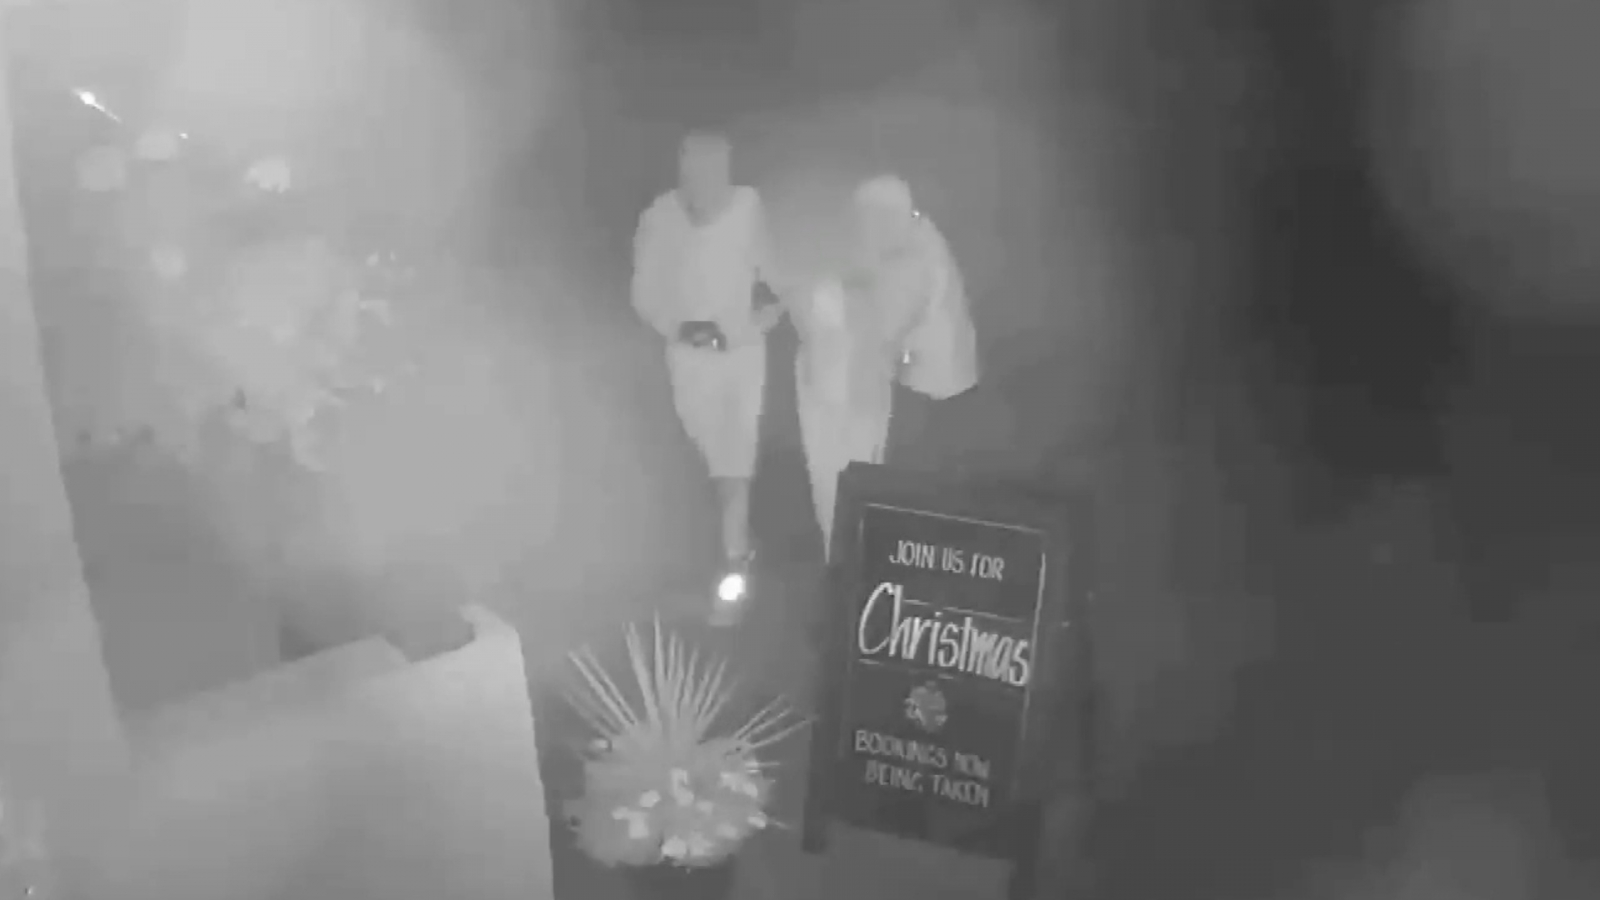 Dramatic CCTV footage shows woman being abducted and robbed in Manchester